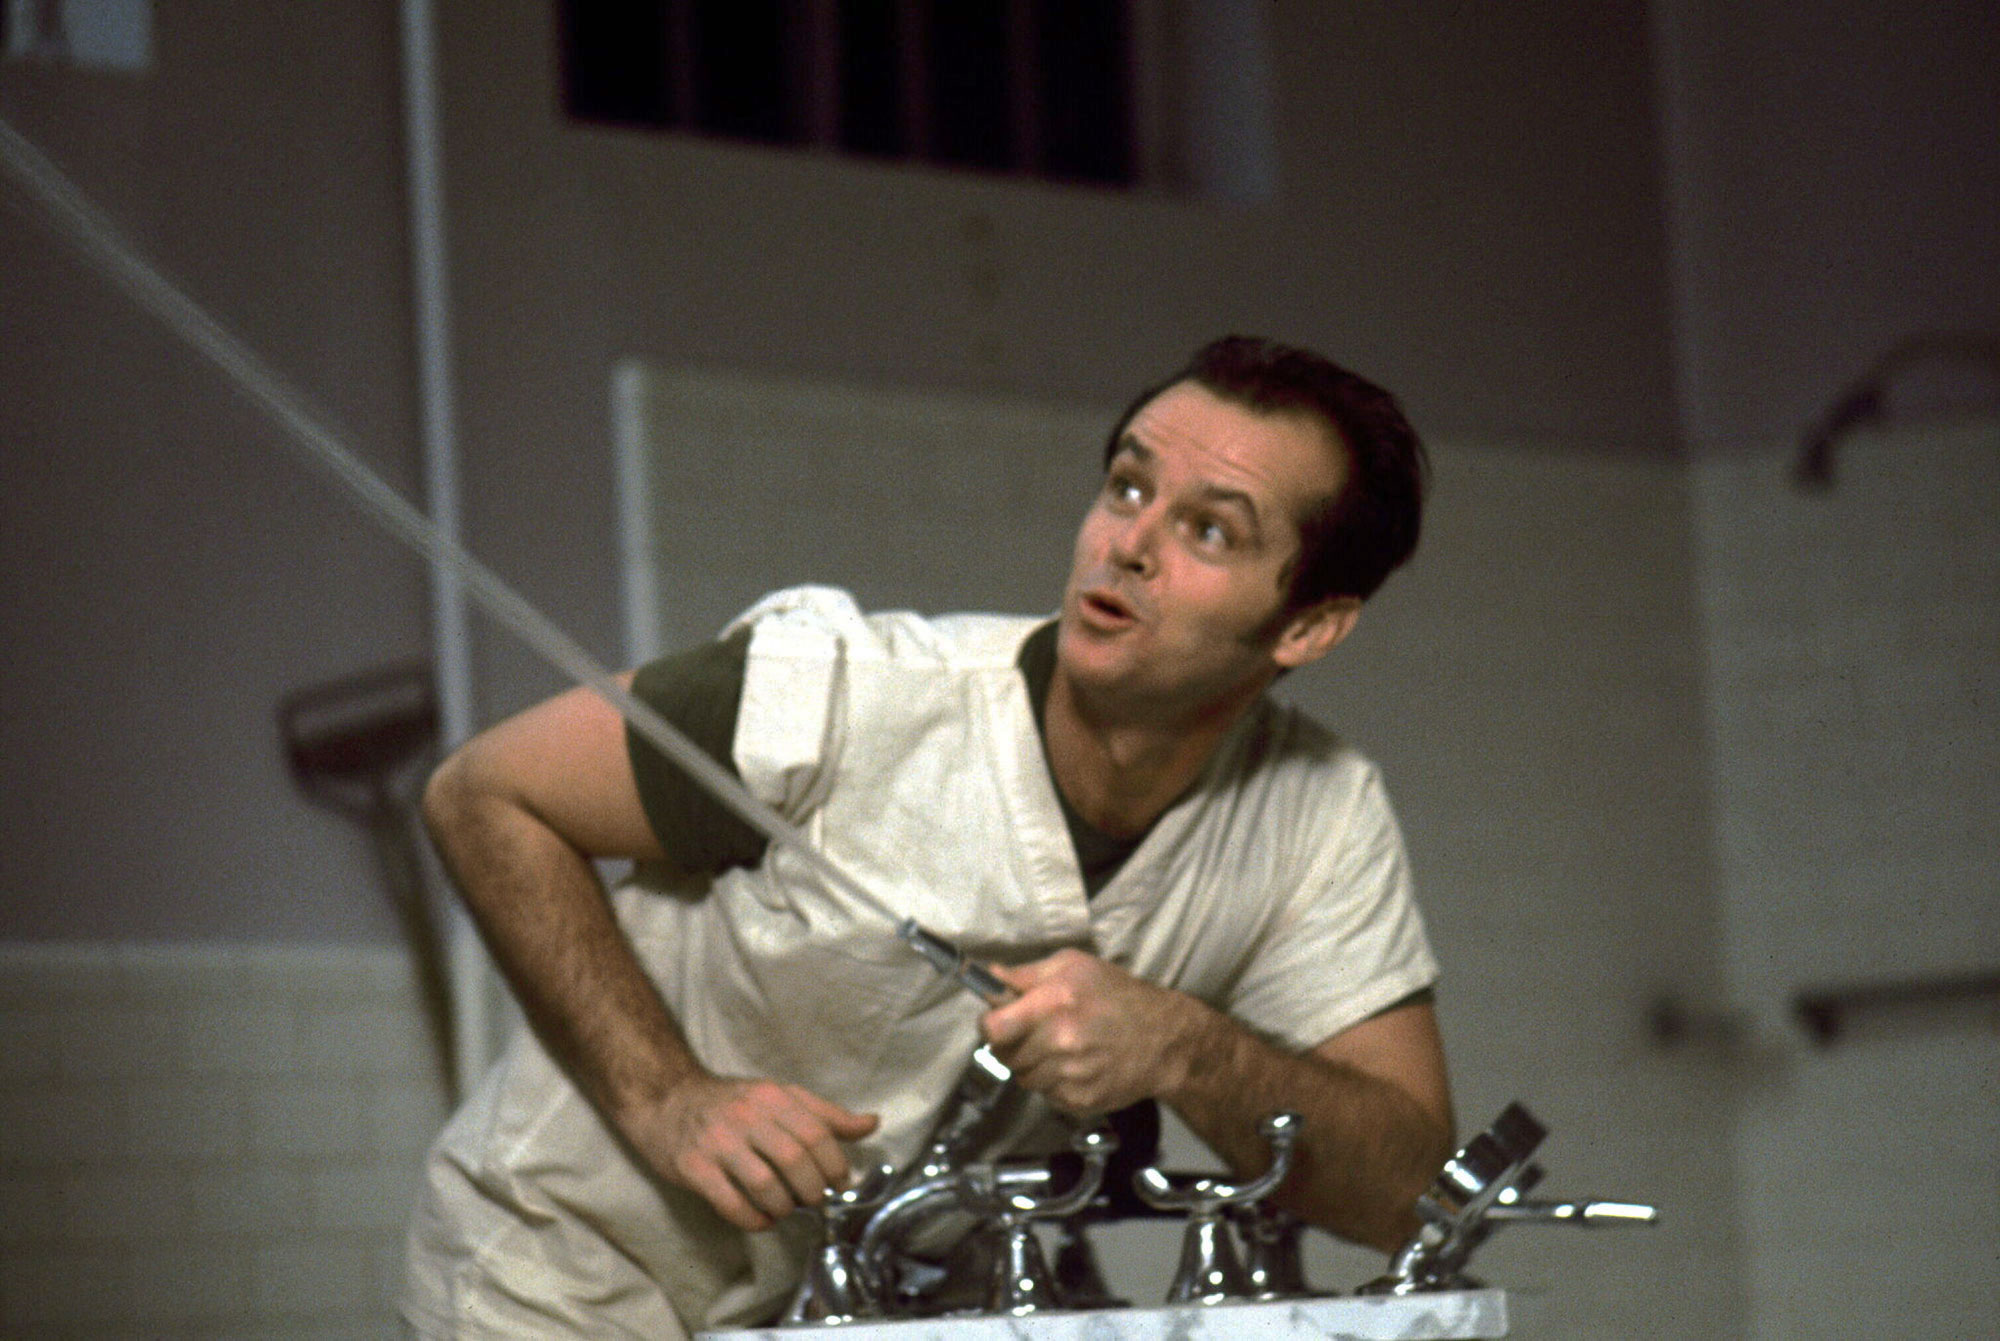 Jack Nicholson as Randle McMurphy in ' One Flew Over the Cuckoo's Nest '1975, directed by Miloš Forman.